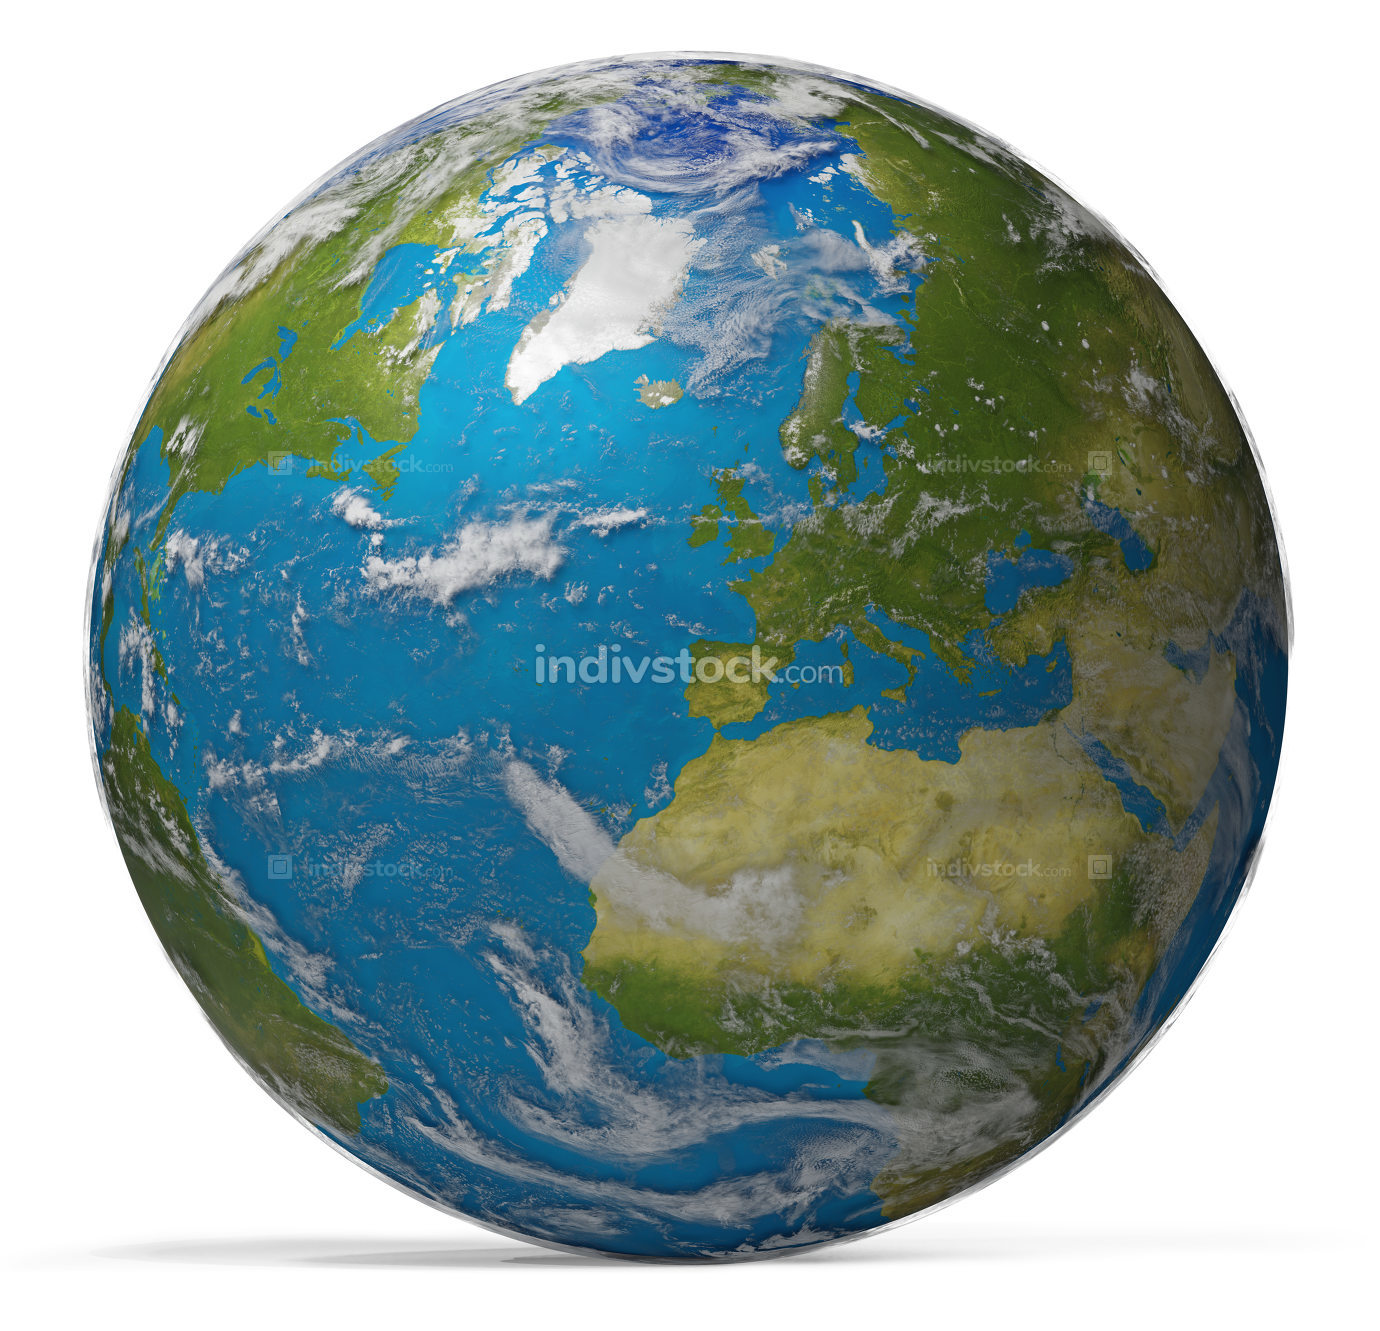 free download: planet earth world wide. elements of this image furnished by NAS